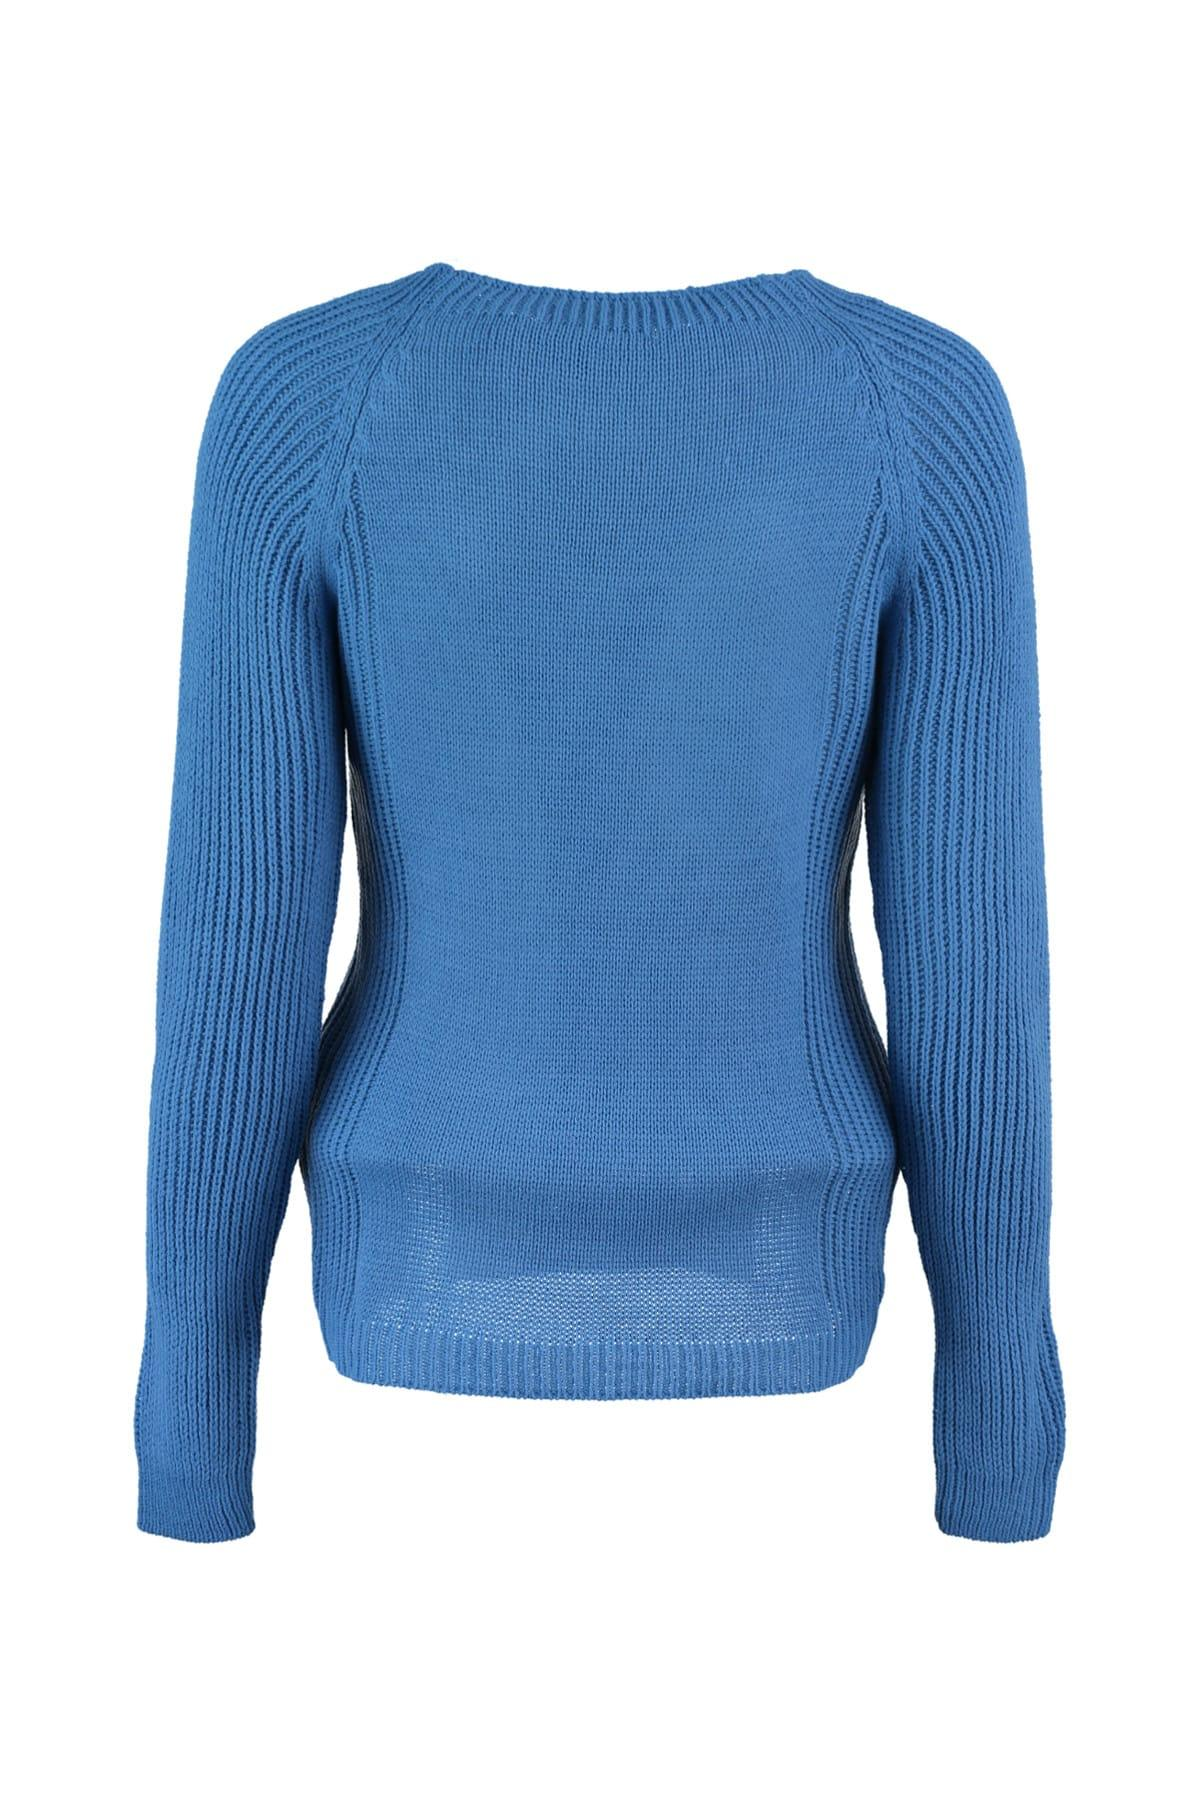 WOMEN Blue Collar Sweater Sweater TWOAW20FV0047